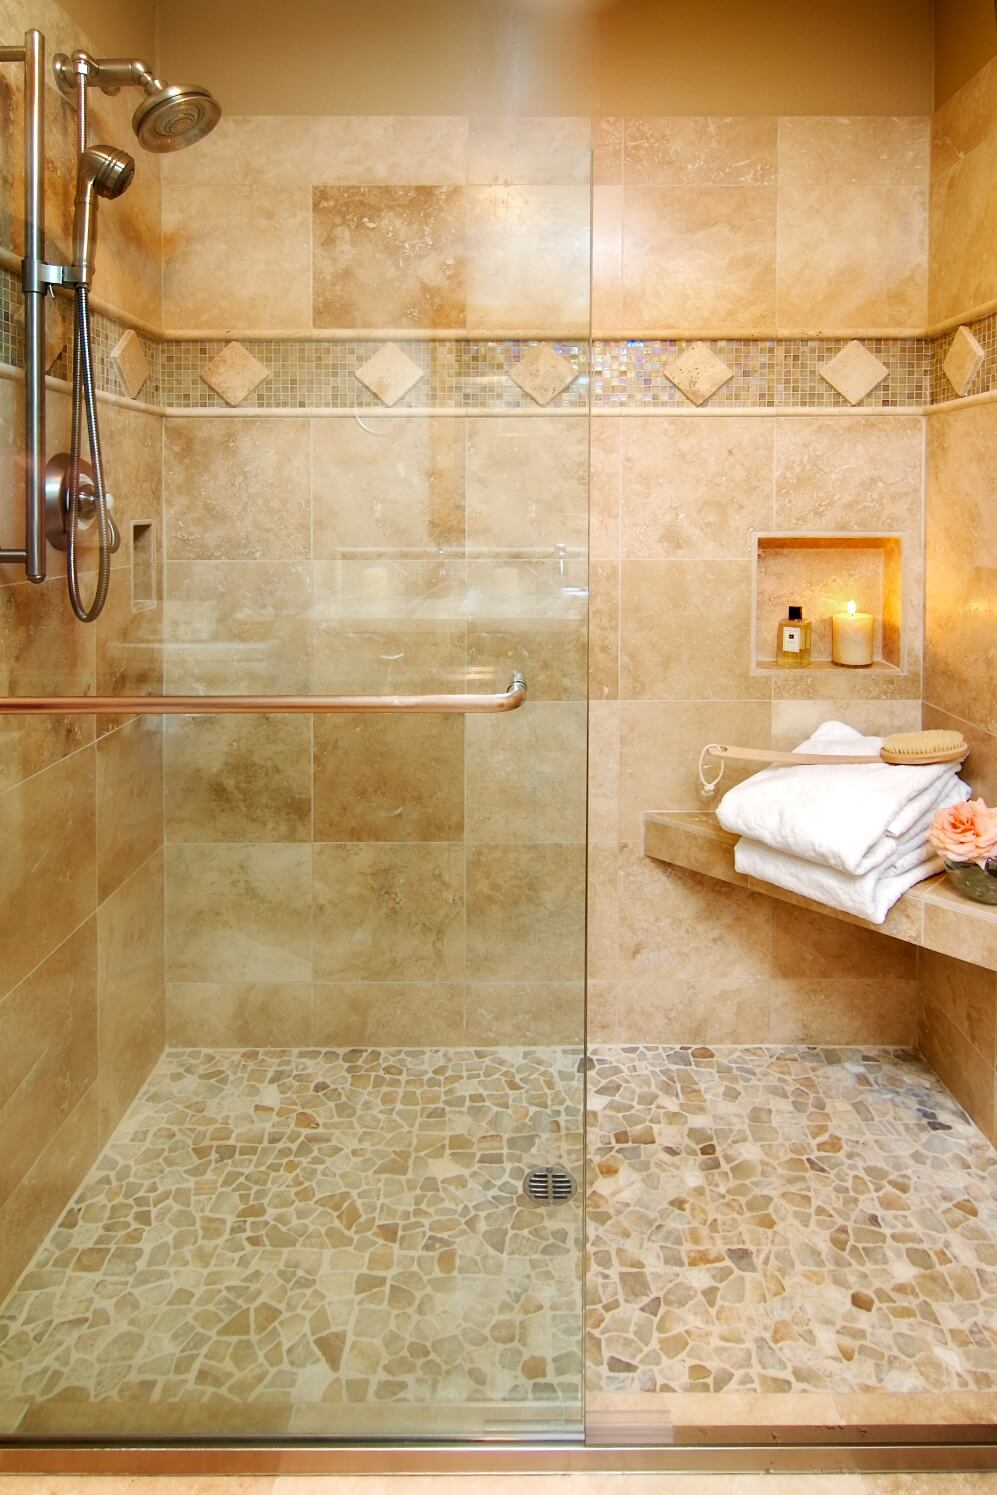 A walk-in travertine shower includes a corner bench and recessed niches.